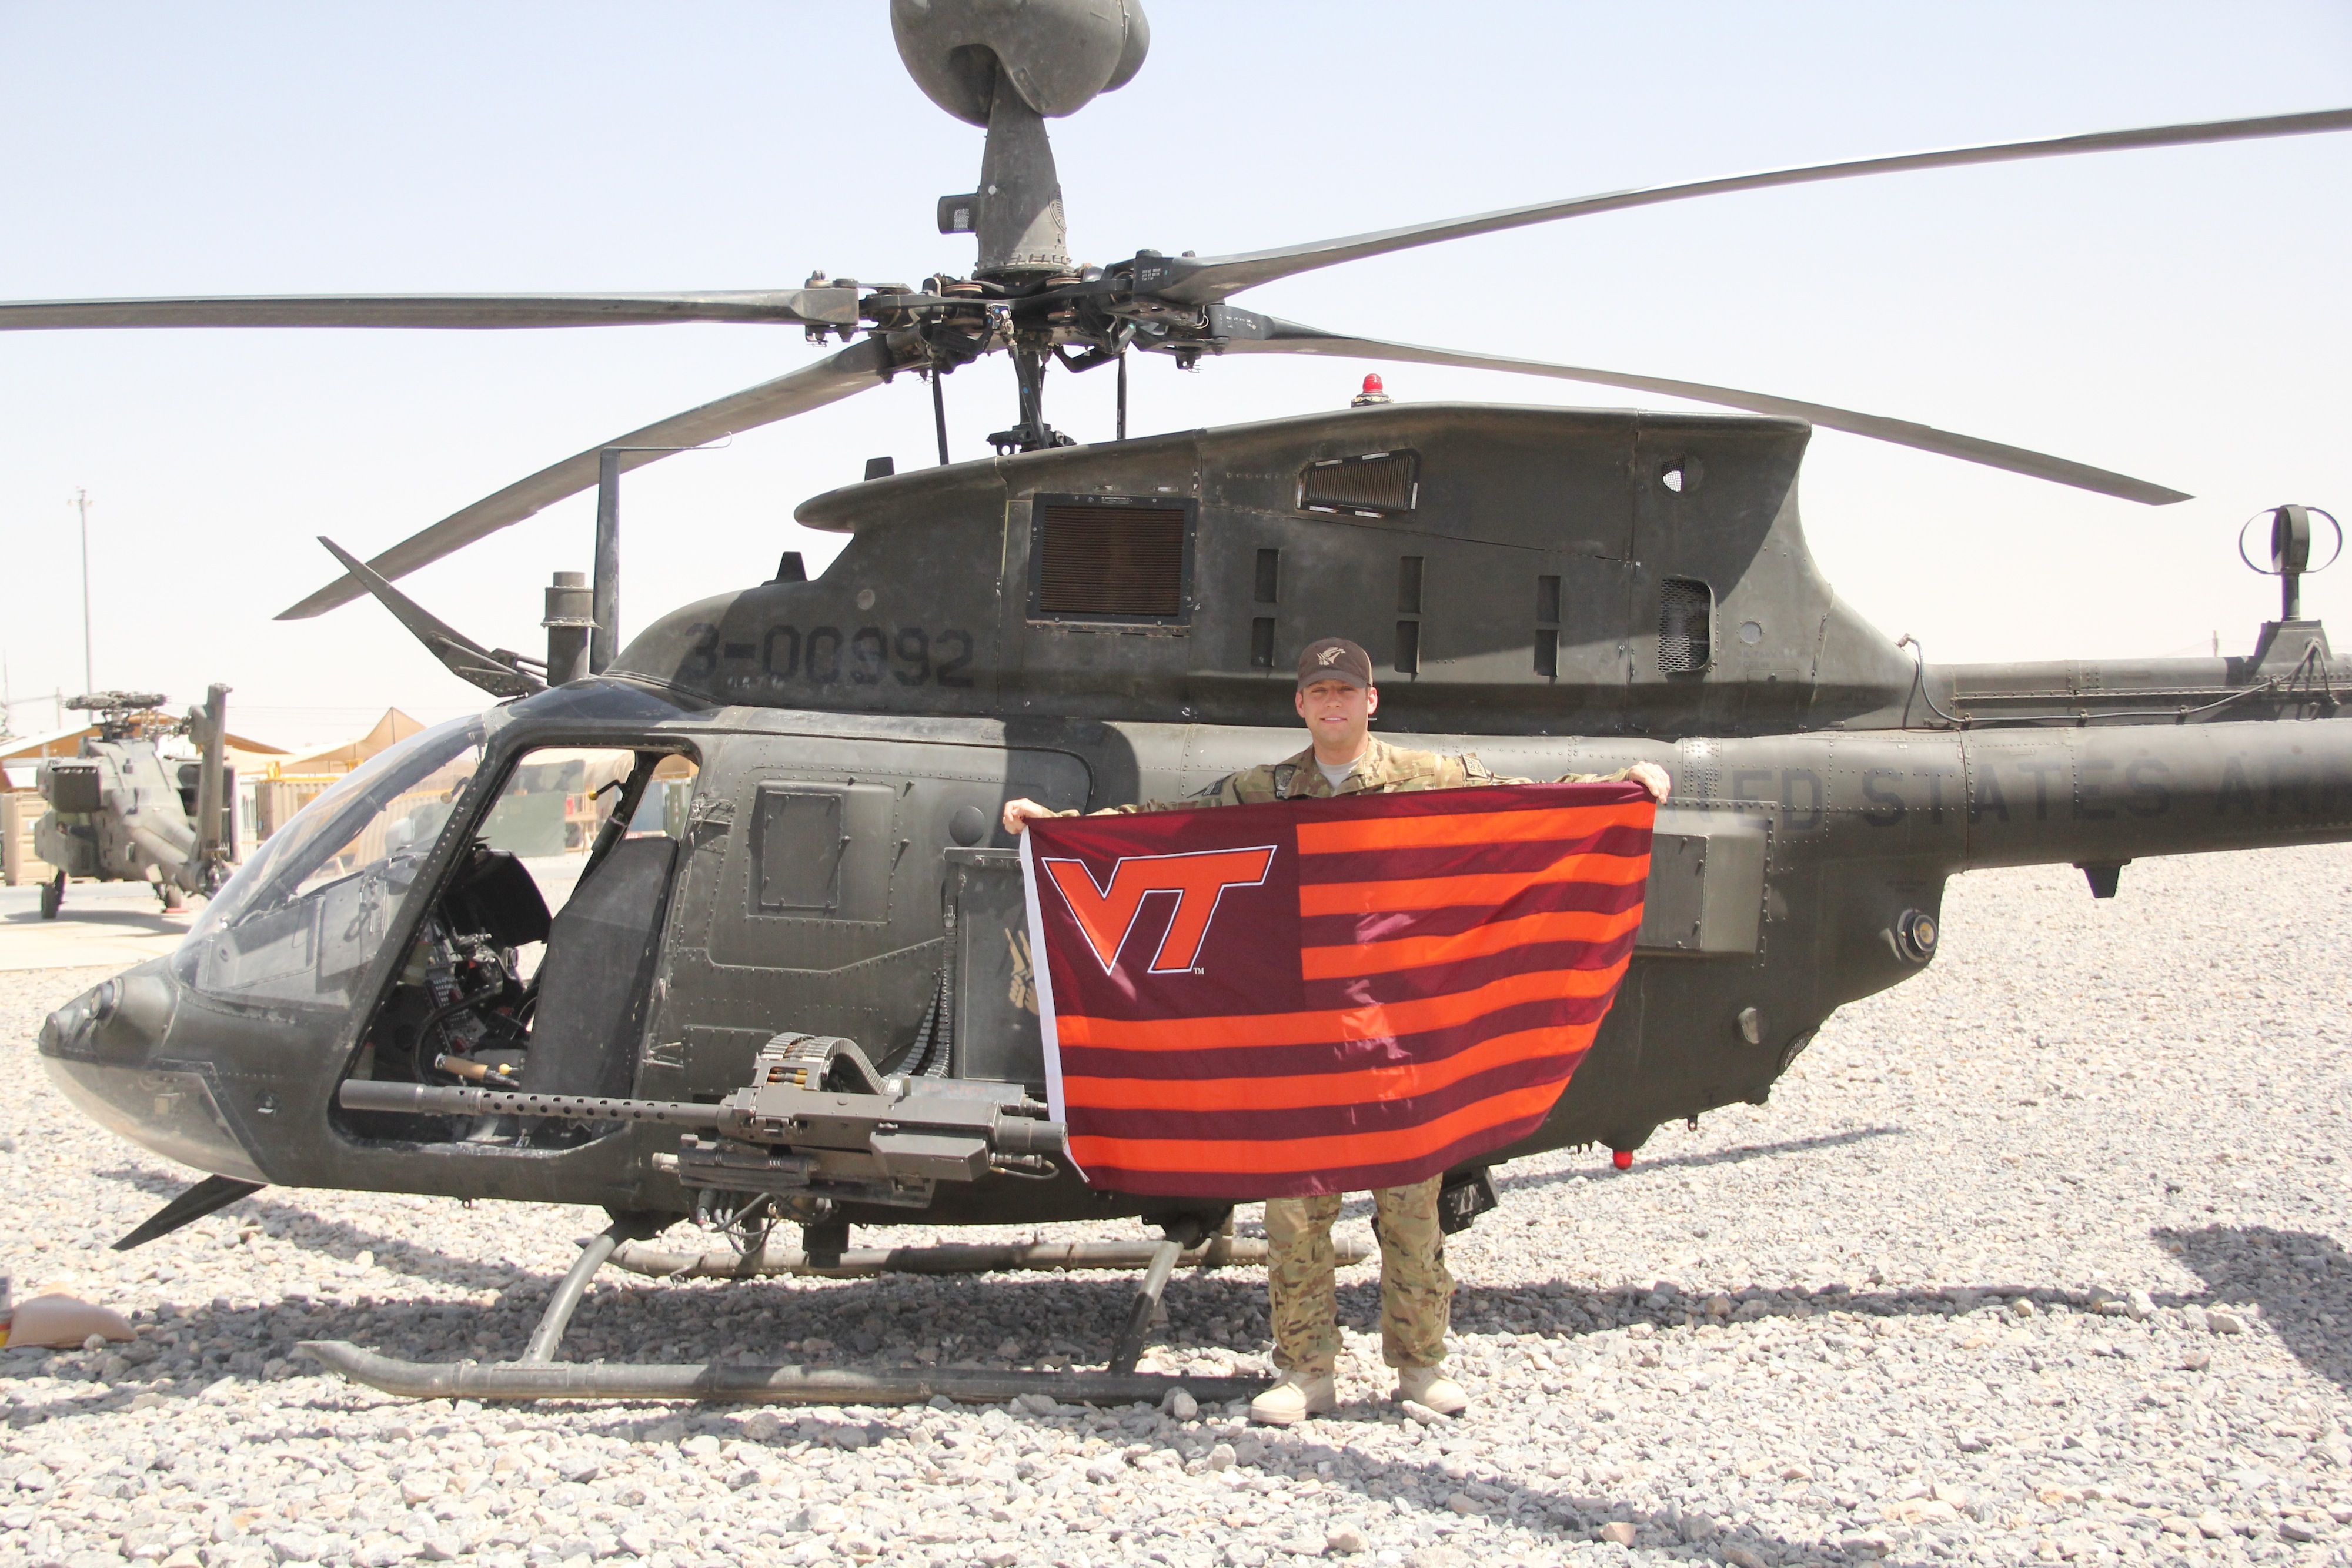 Capt. Andy Howell, U.S. Army, Virginia Tech Corps of Cadets Class of 2007 shown with his helicopter in Afghanistan